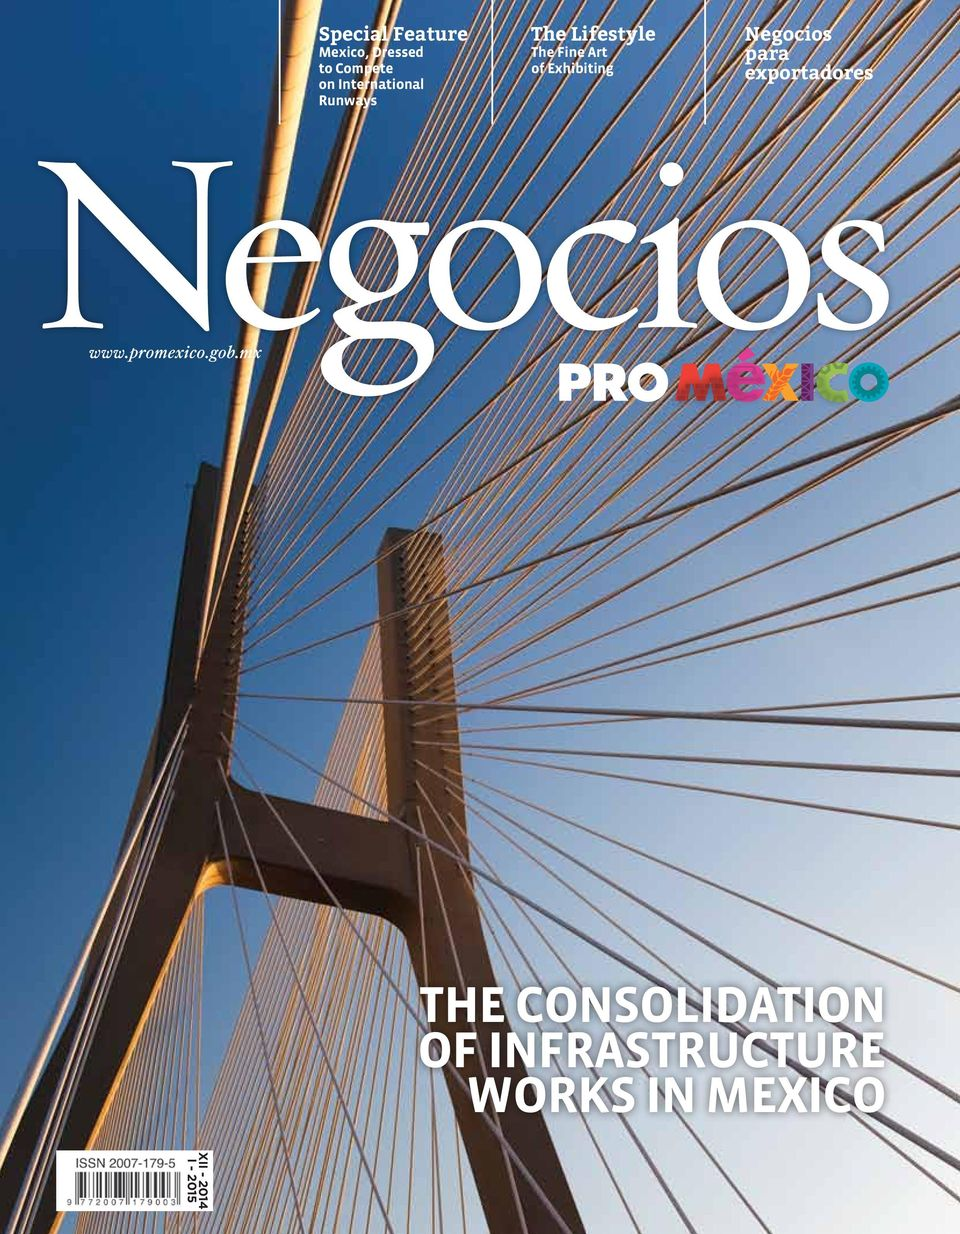 Exhibiting Negocios para exportadores The